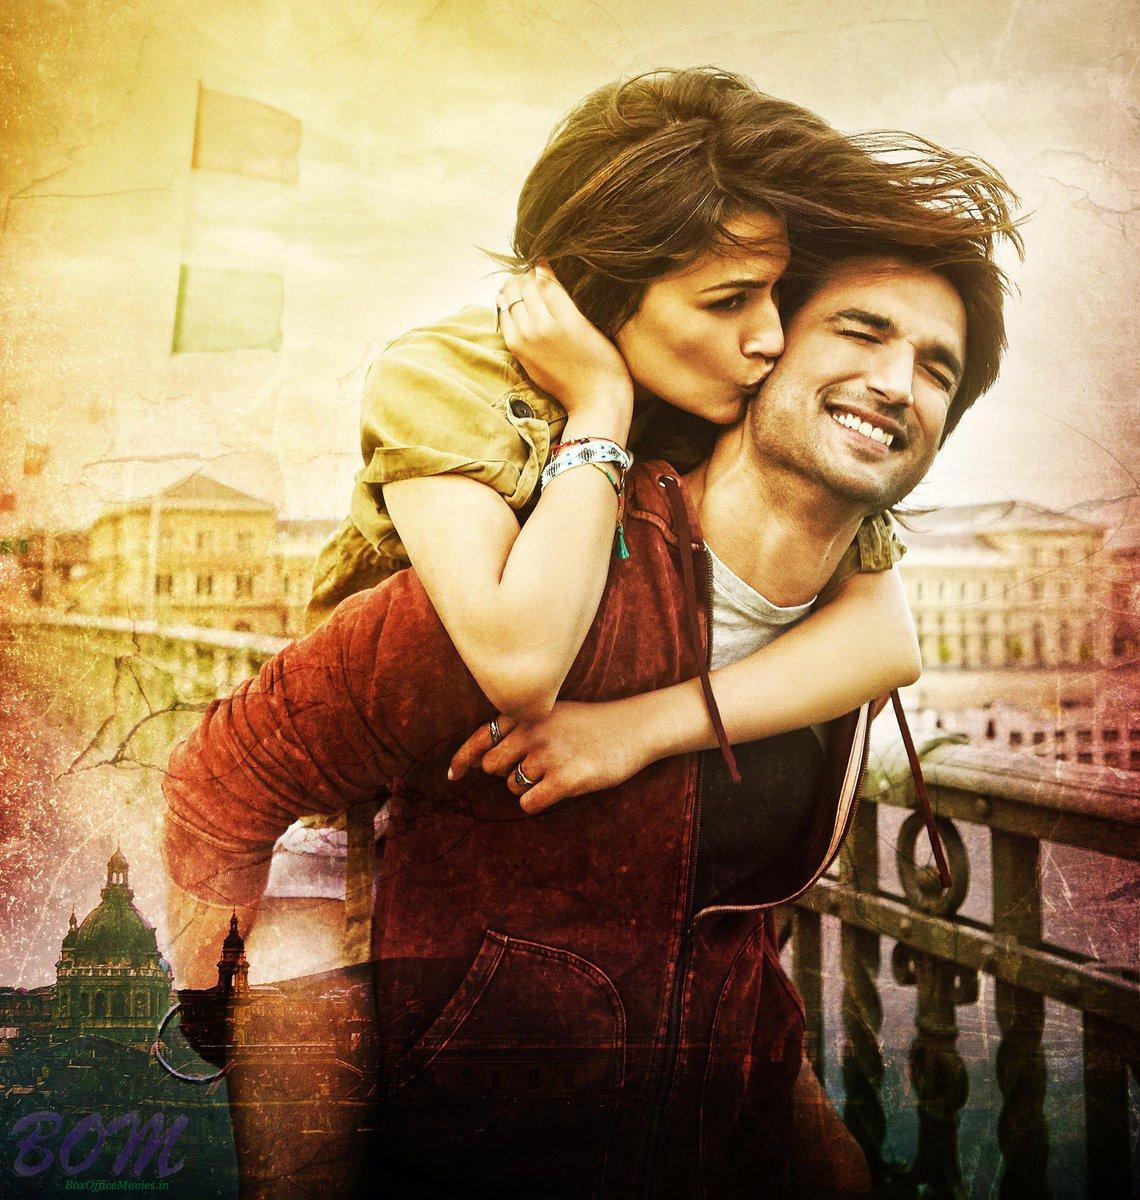 Sushant Singh Rajput and Kriti Sanon starrer First look picture of Raabta